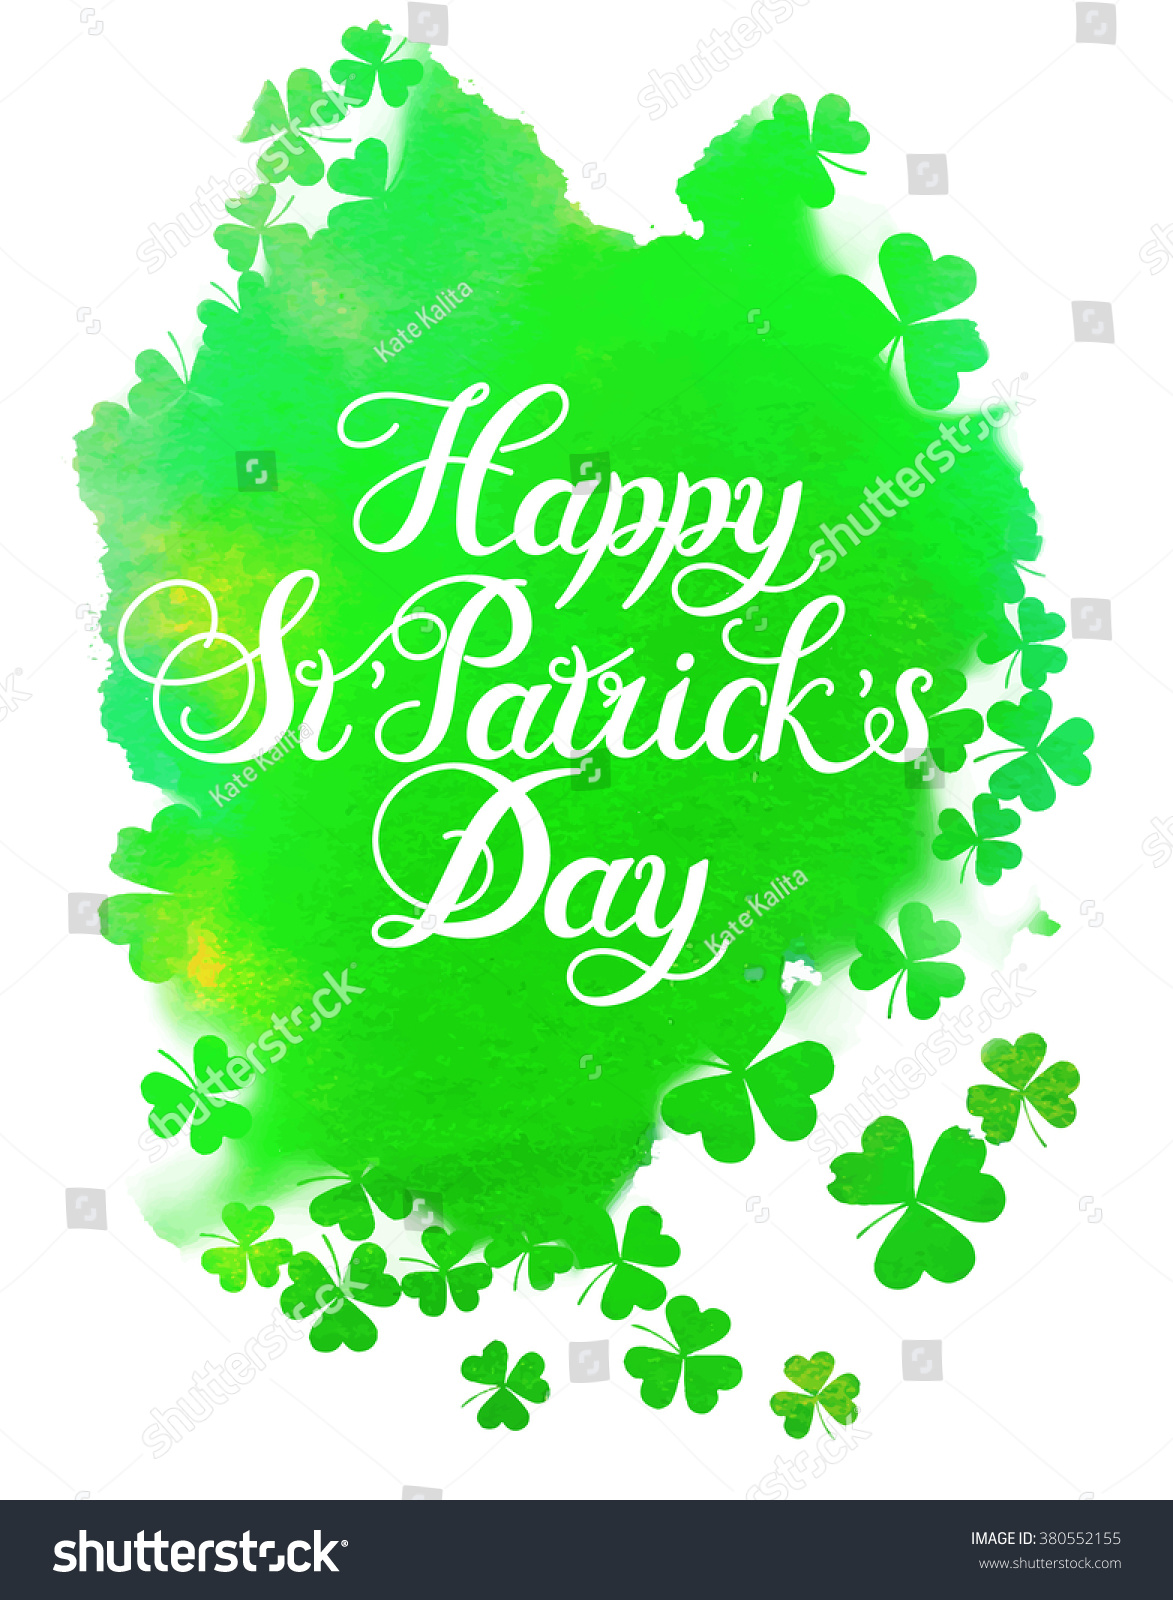 St Patricks Day Greeting Green Watercolor Isolated Stock Vector